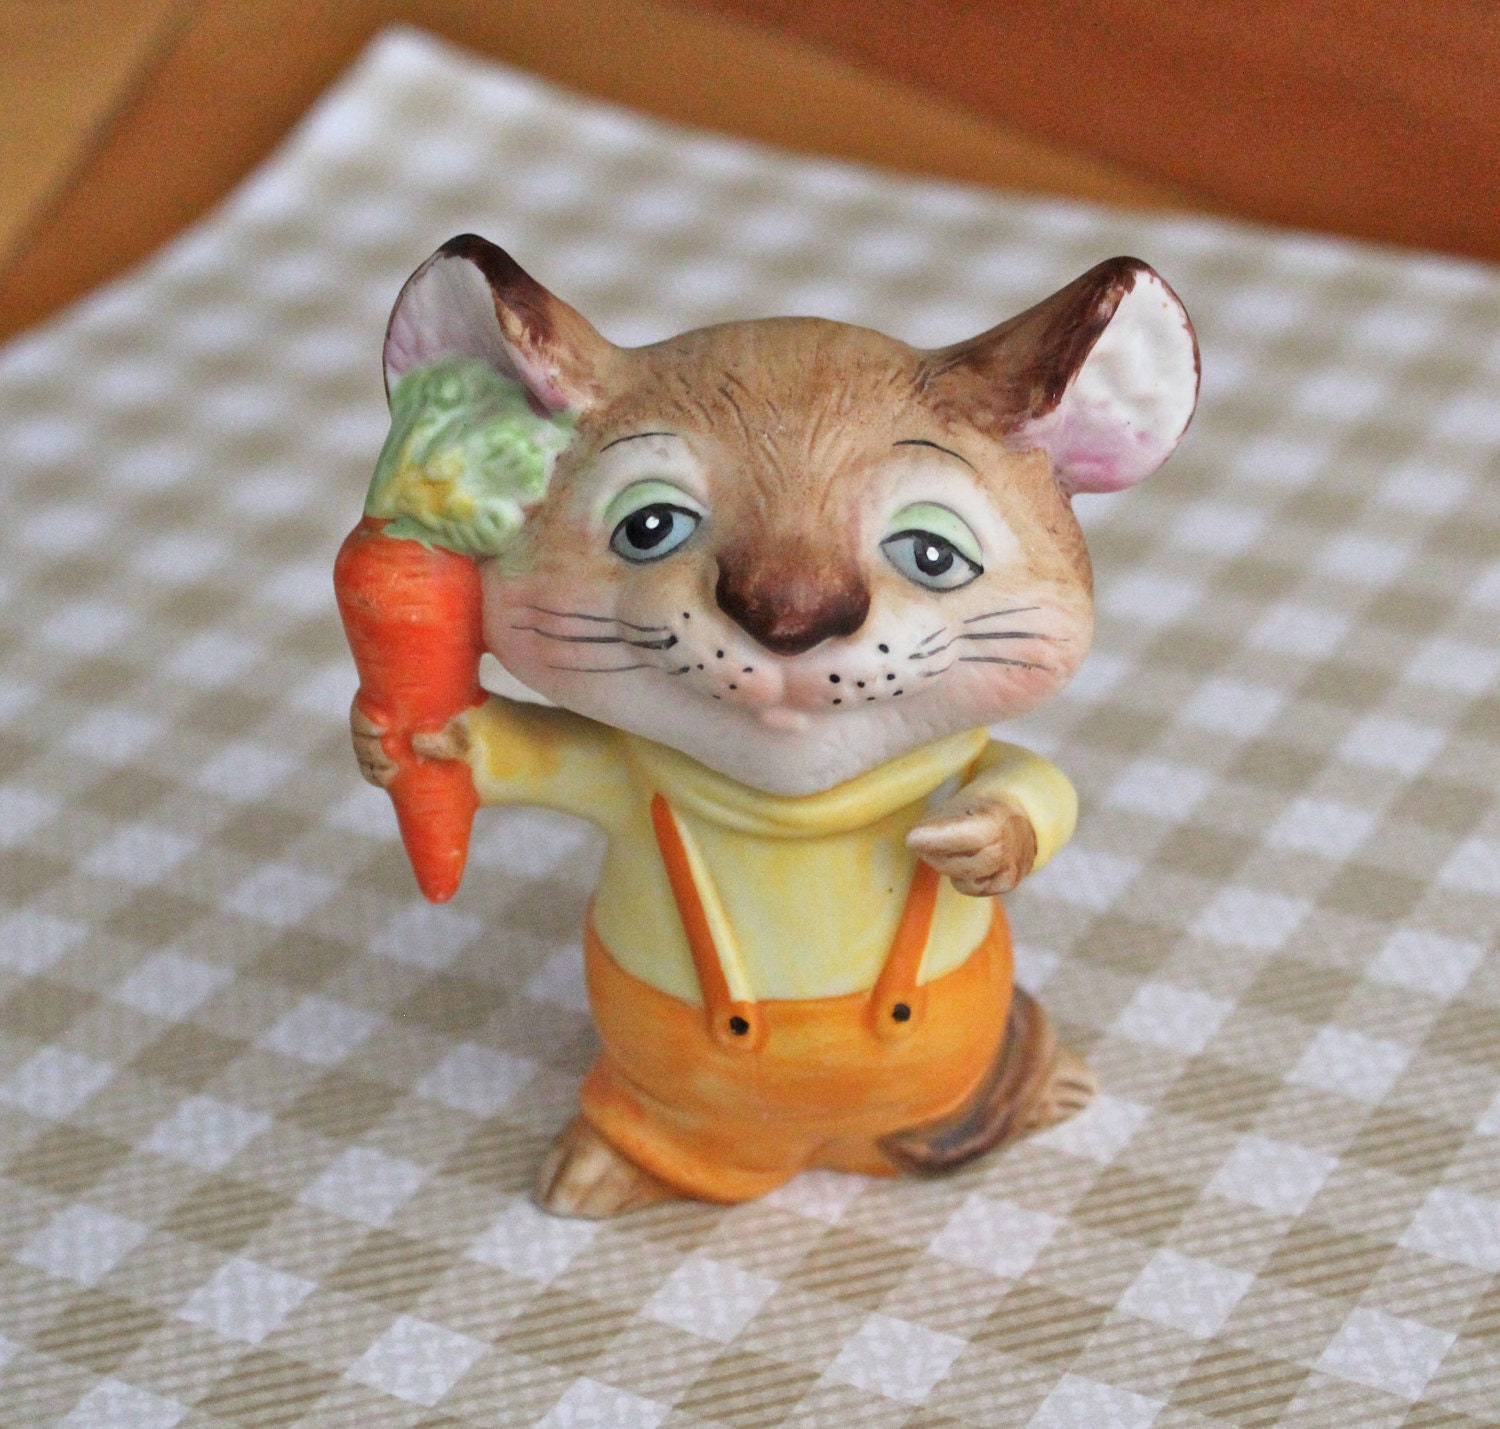 Vintage Homco Home Interiors Farm Mouse With Carrot Figurine